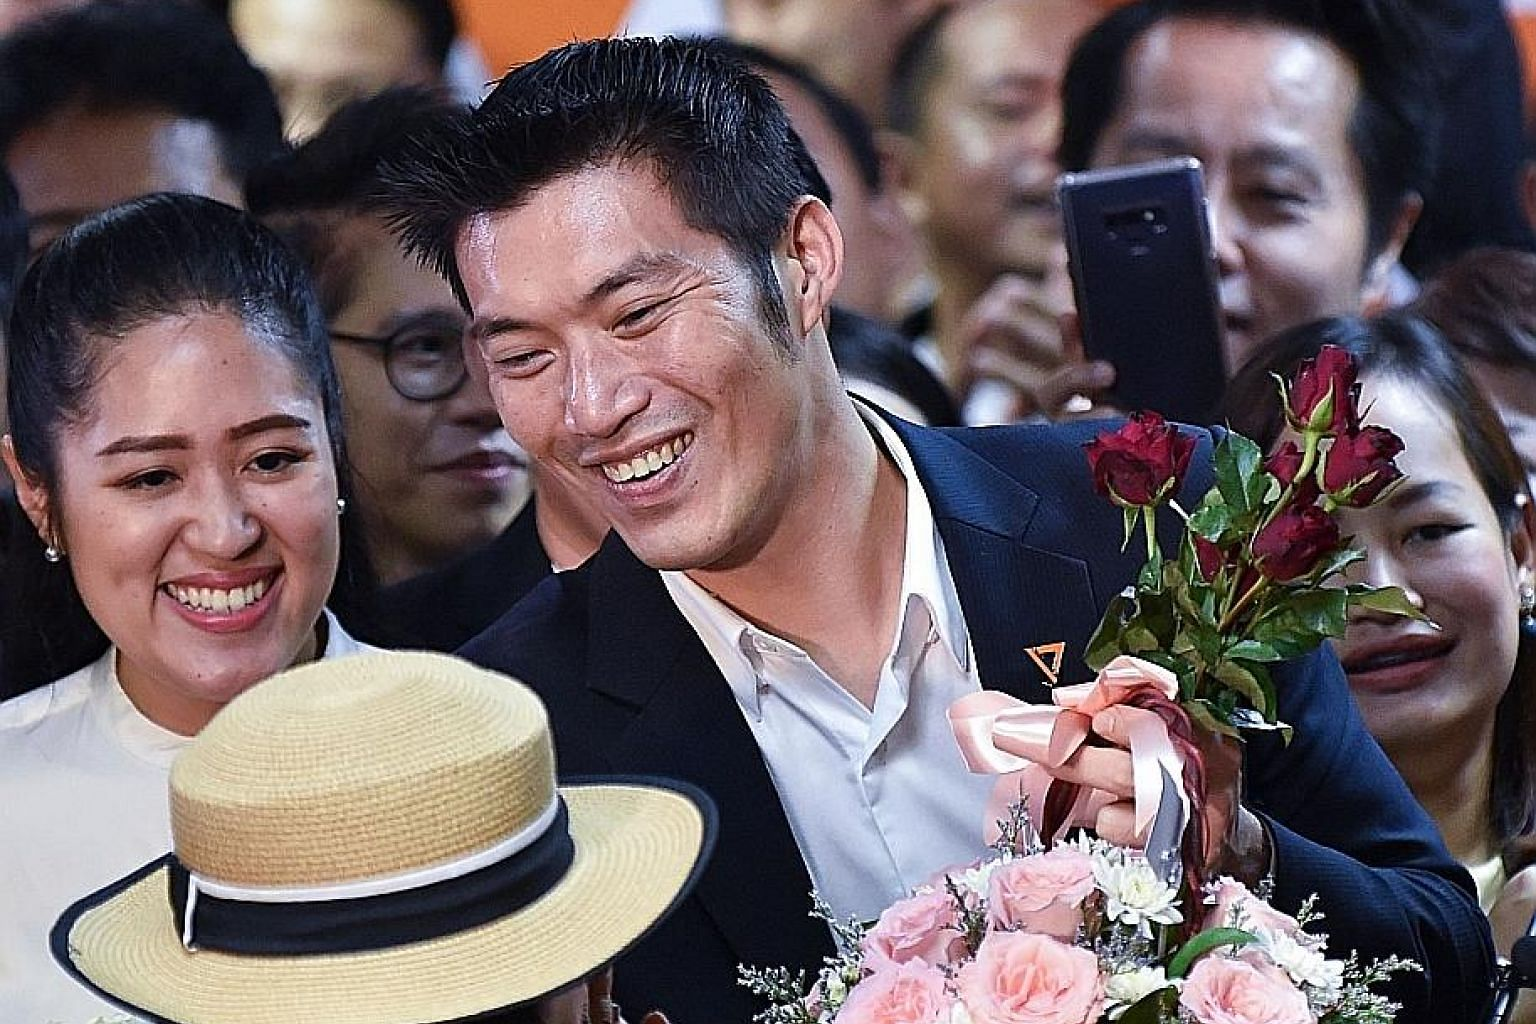 Future Forward's founder Thanathorn Juangroongruangkit greeting supporters in Bangkok yesterday, after Thailand's Constitutional Court found it not guilty of seeking to overthrow the constitutional monarchy. PHOTO: AGENCE FRANCE-PRESSE